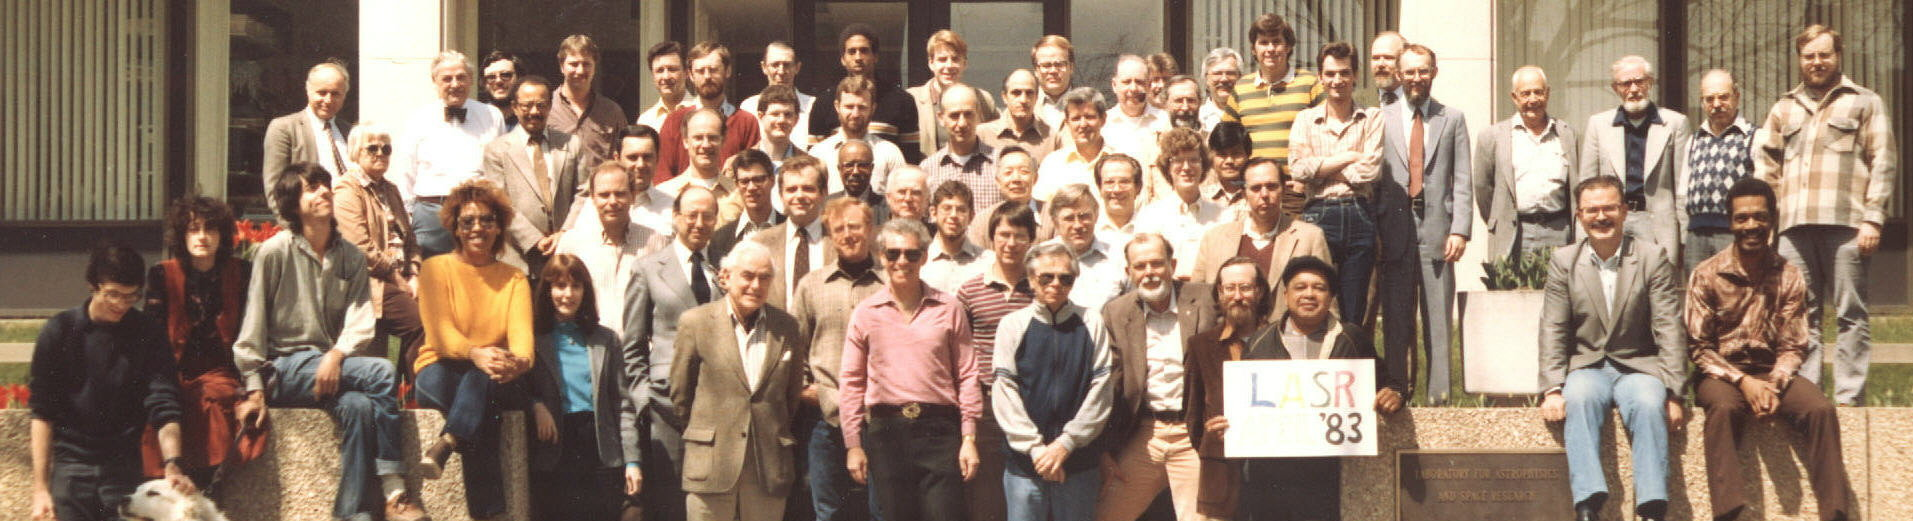 LASR 1983 staff picture. Click for printable version with legend.